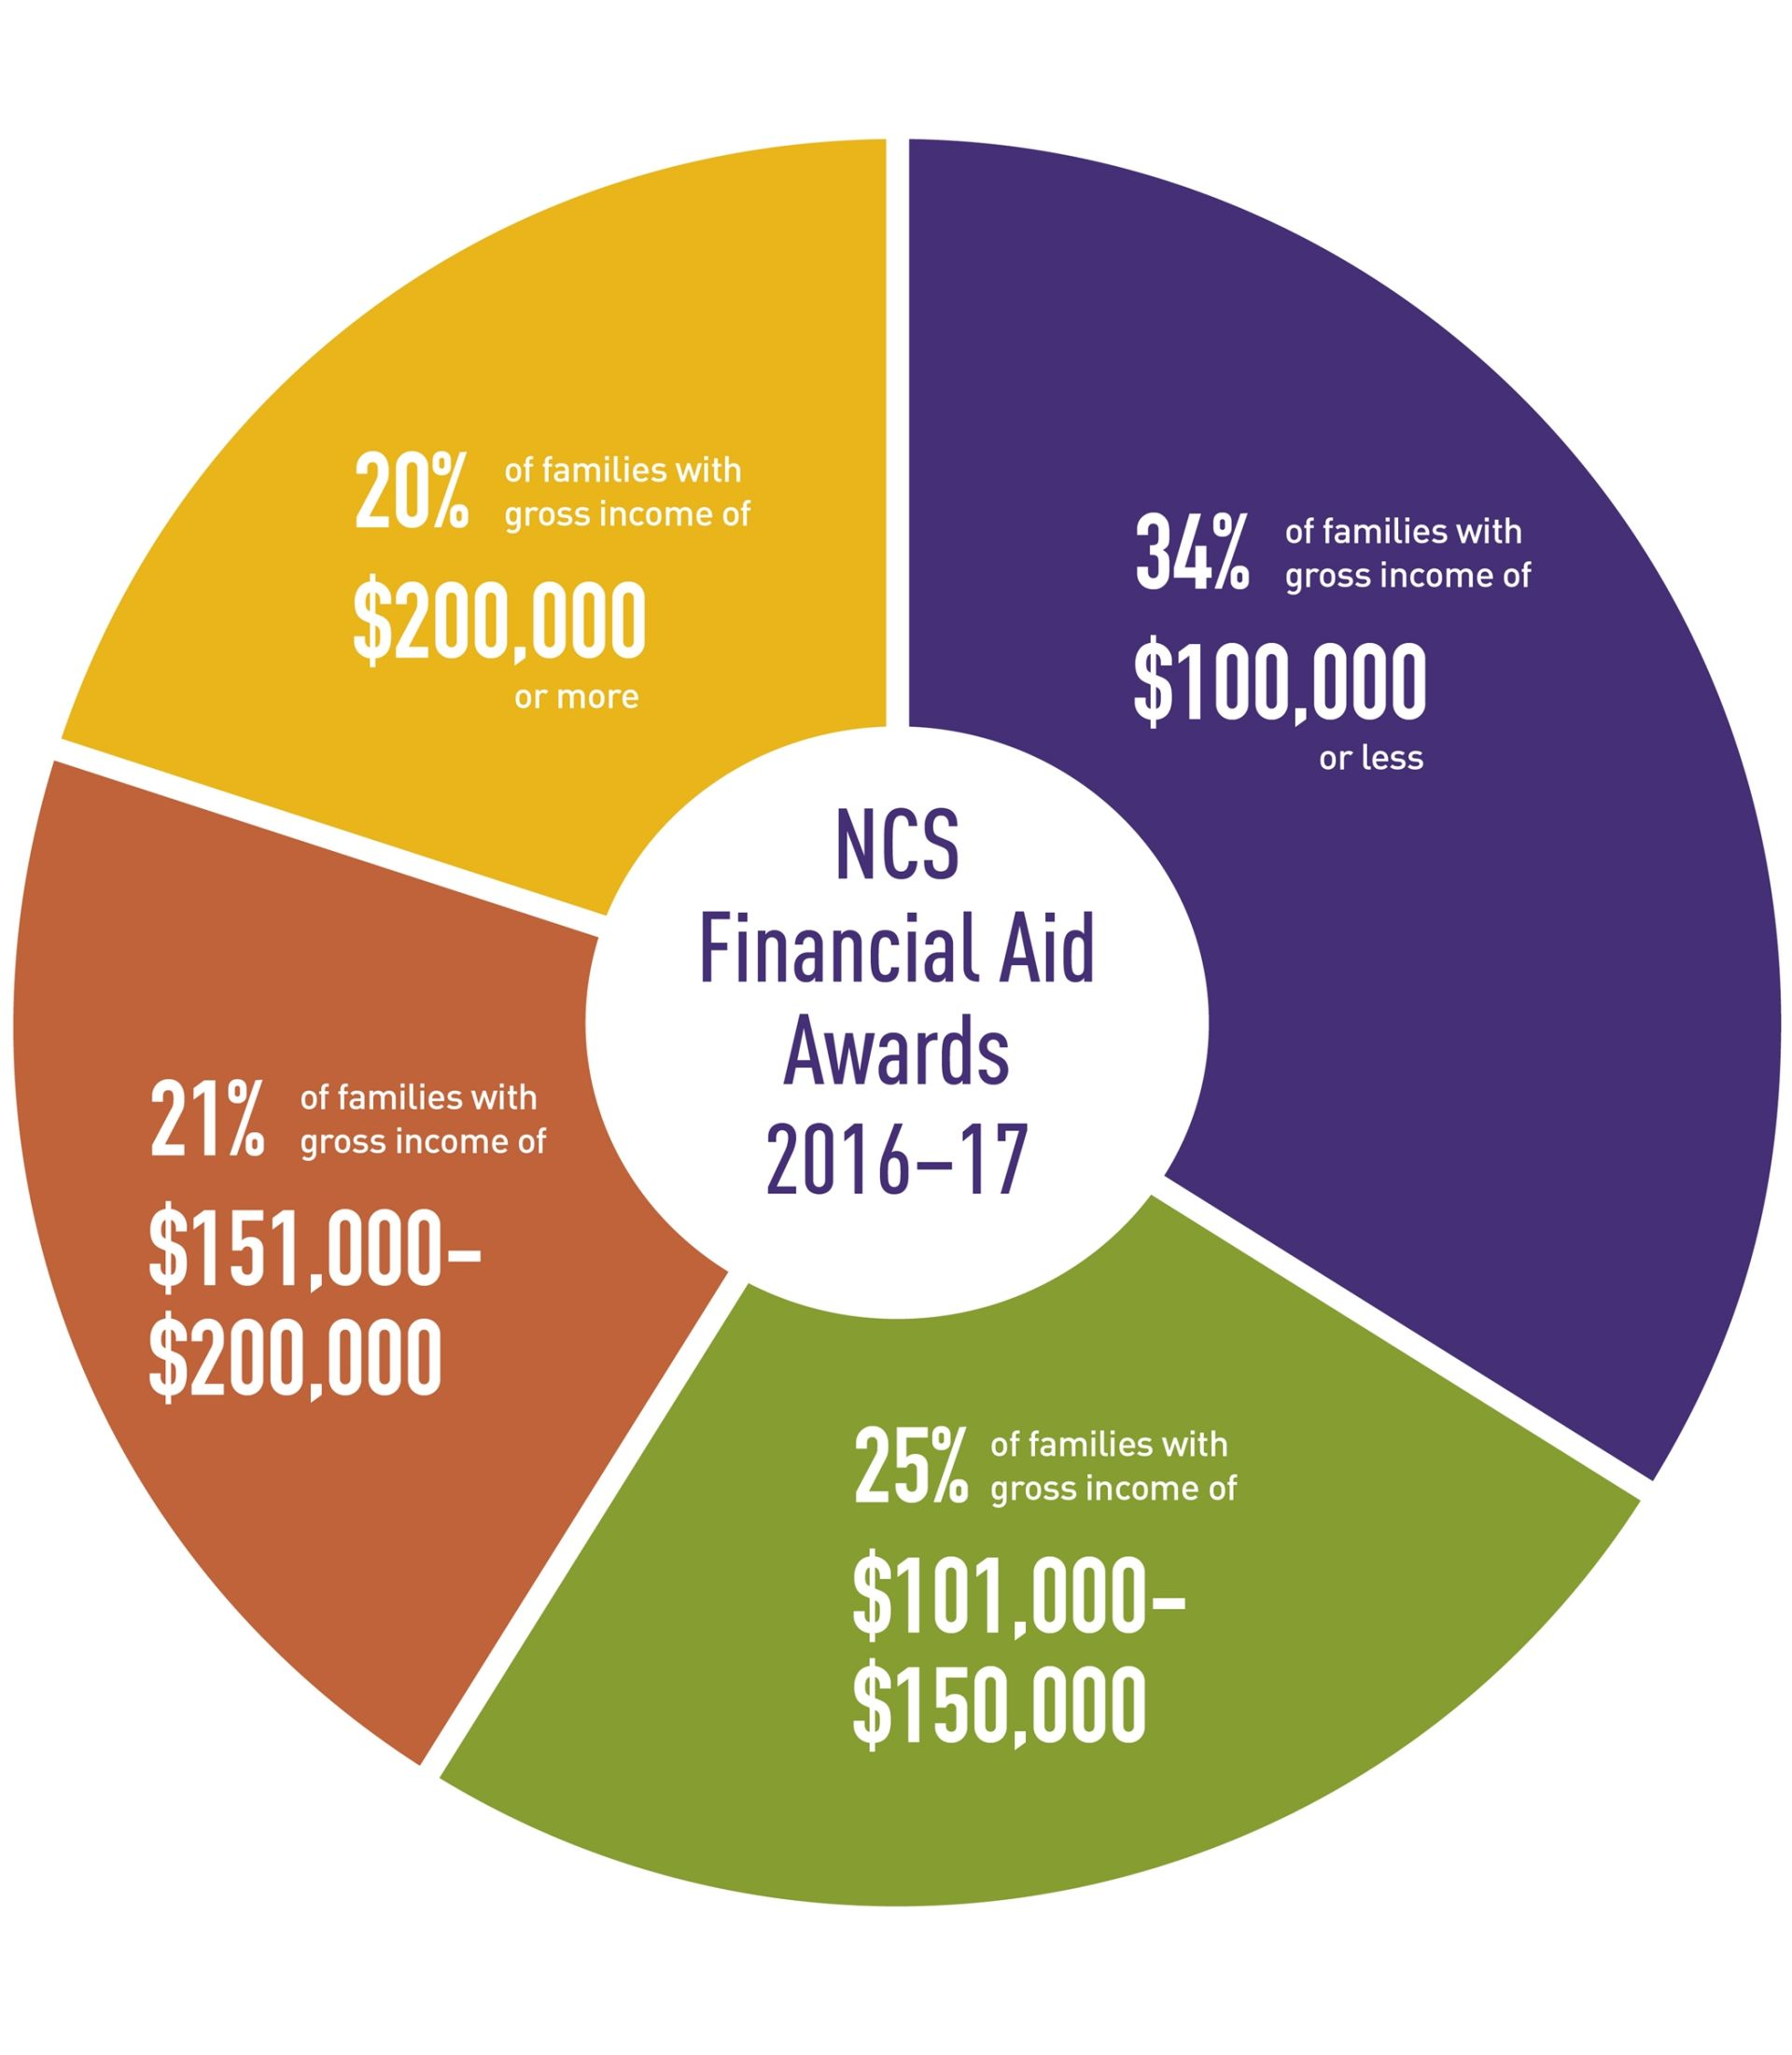 "<a href=""http://ncs.cathedral.org/Page/Admission/Financial-Aid"" target=""_blank"">Financial Aid Information</a>"